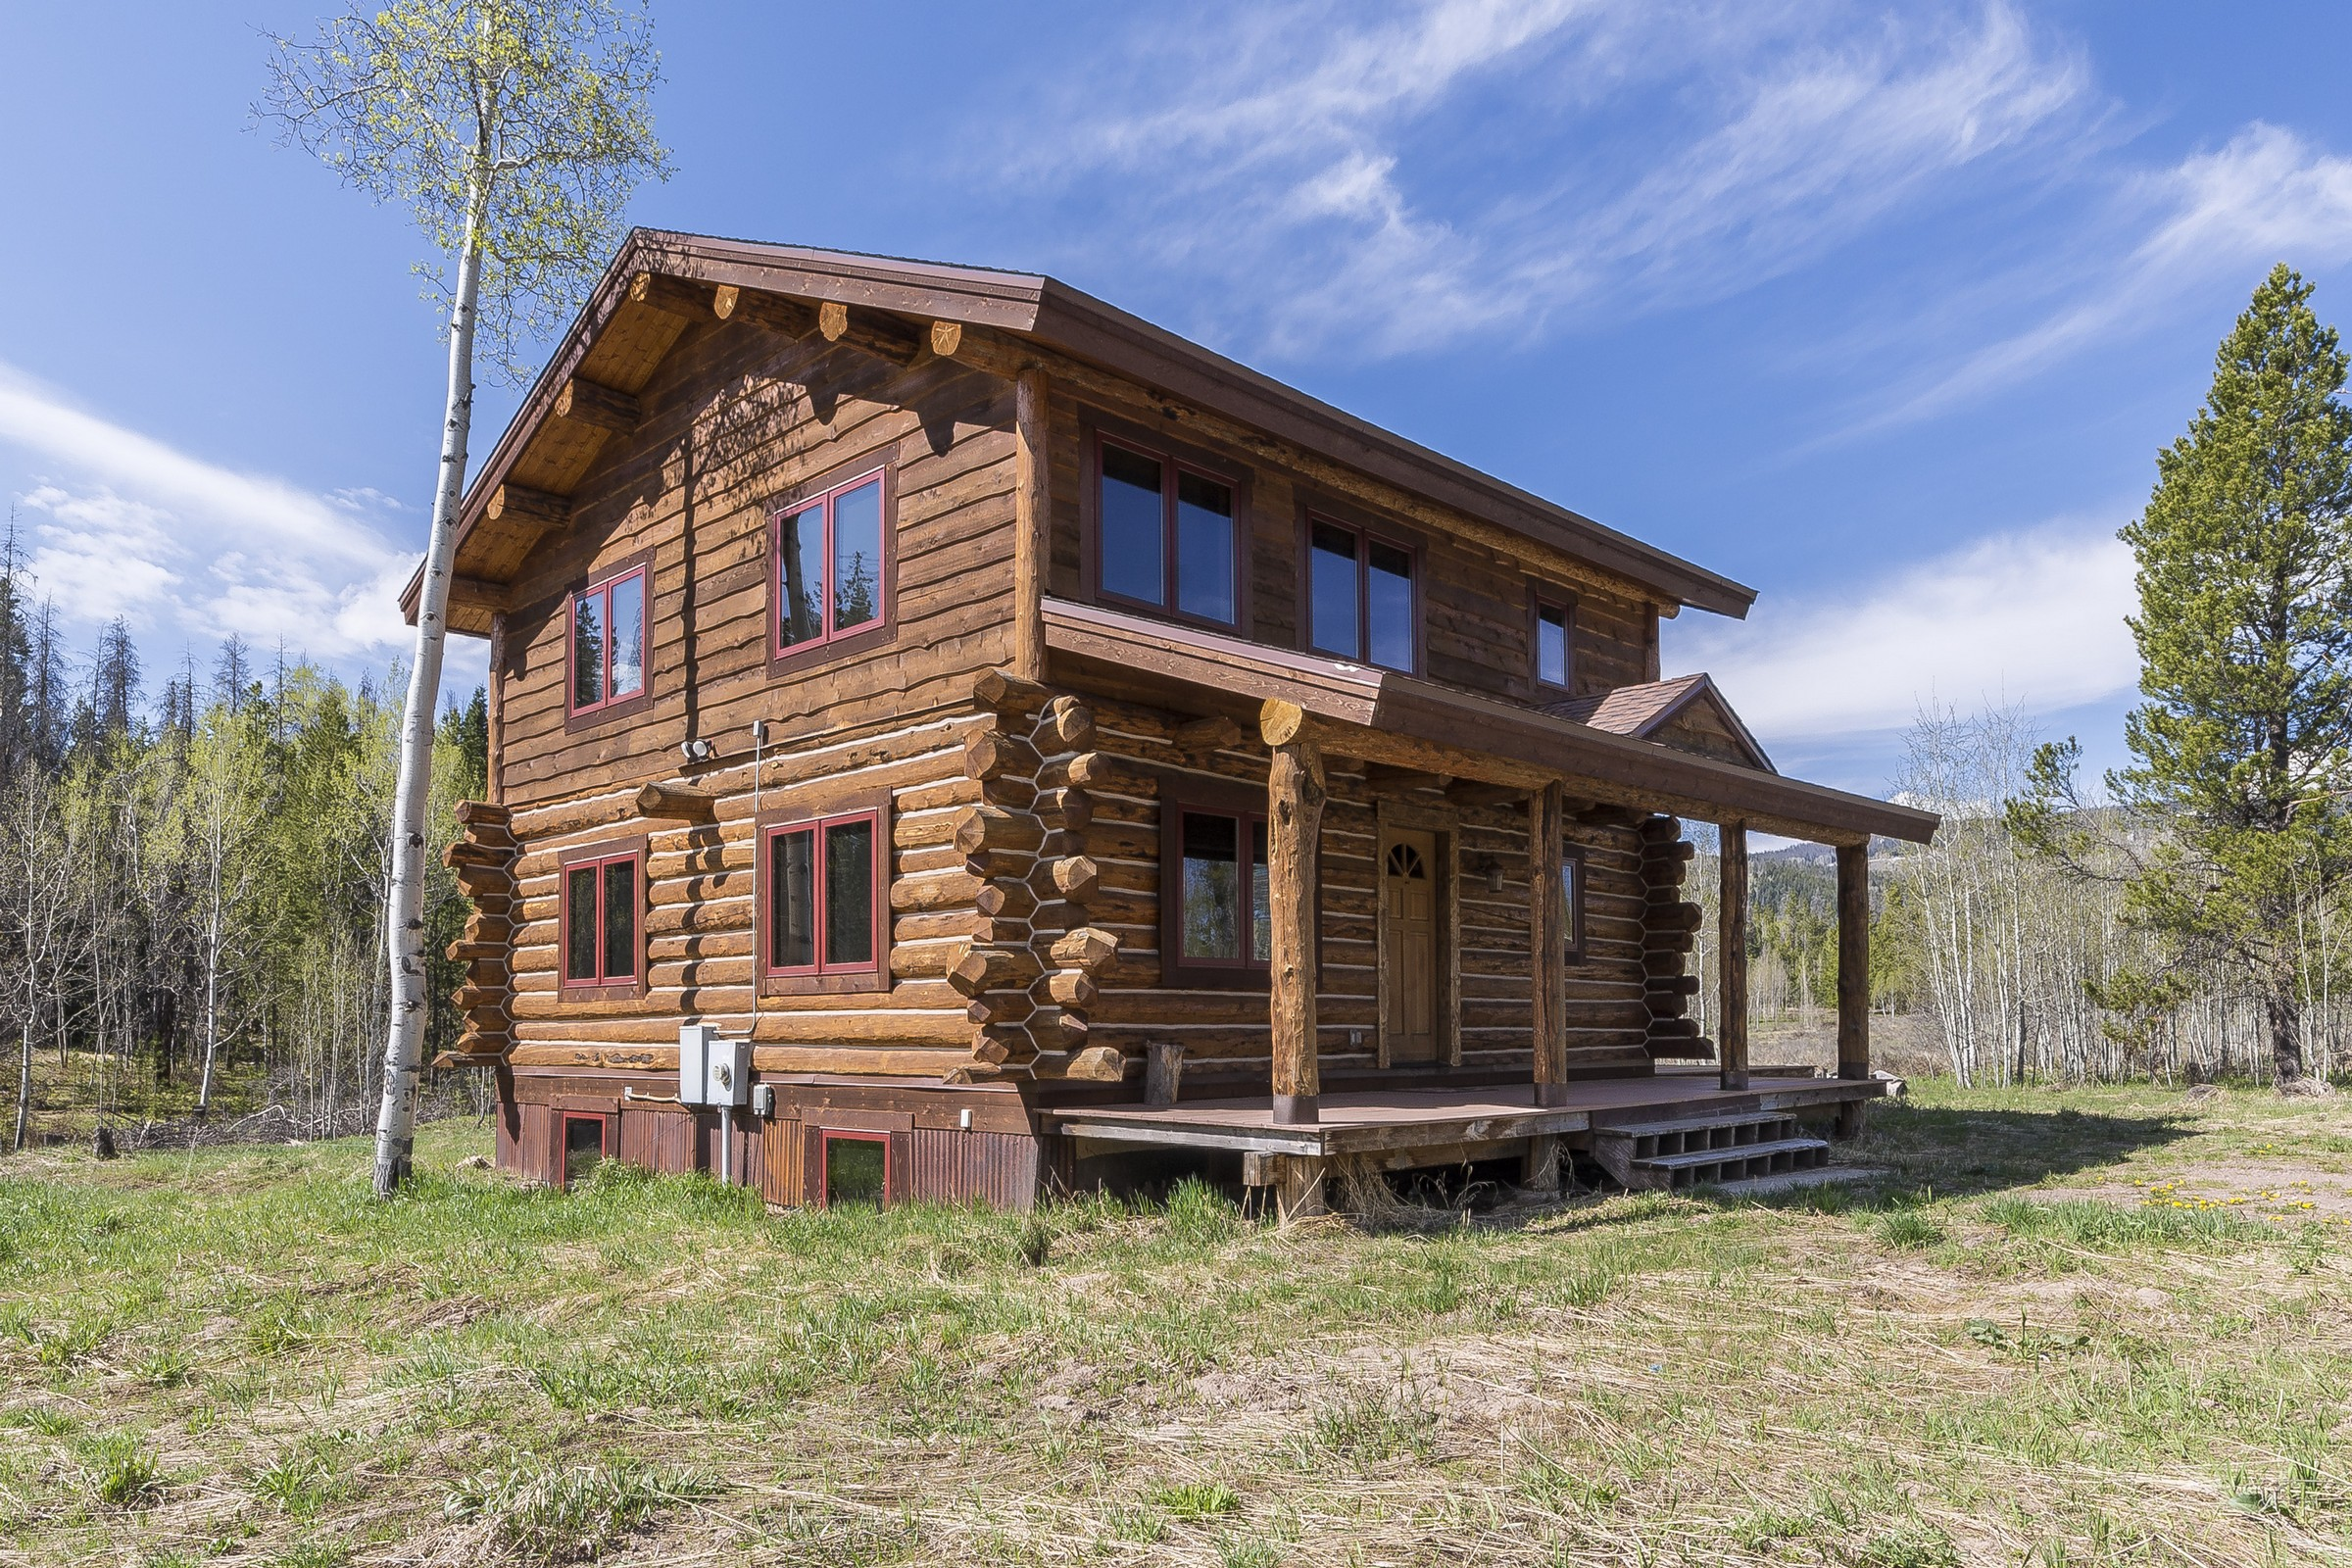 Casa Unifamiliar por un Venta en Stagecoach Log Cabin Oak Creek, Colorado, 80467 Estados Unidos